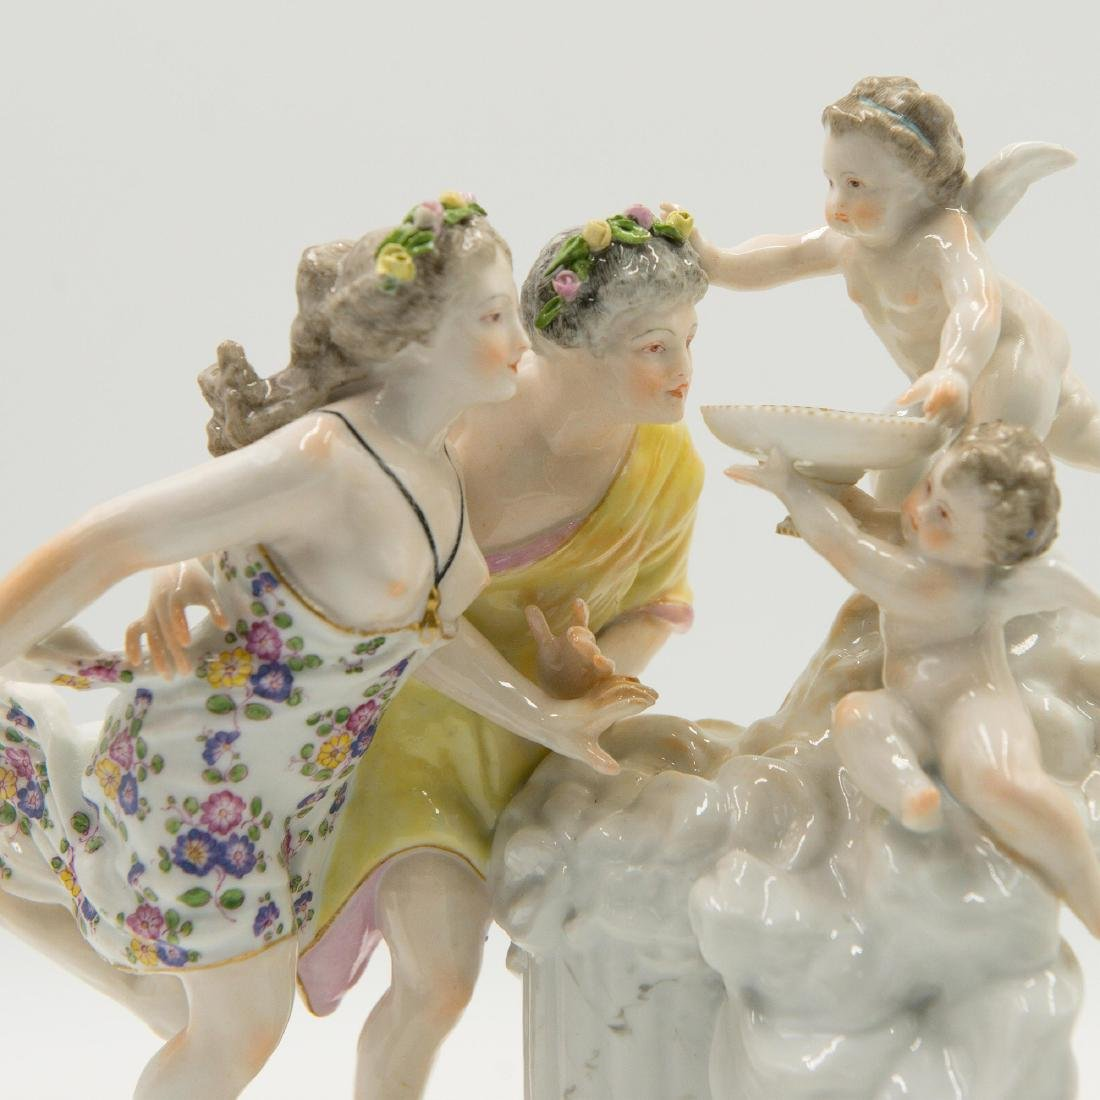 Samson French Porcelain Semi Nude Group Figurine - 3